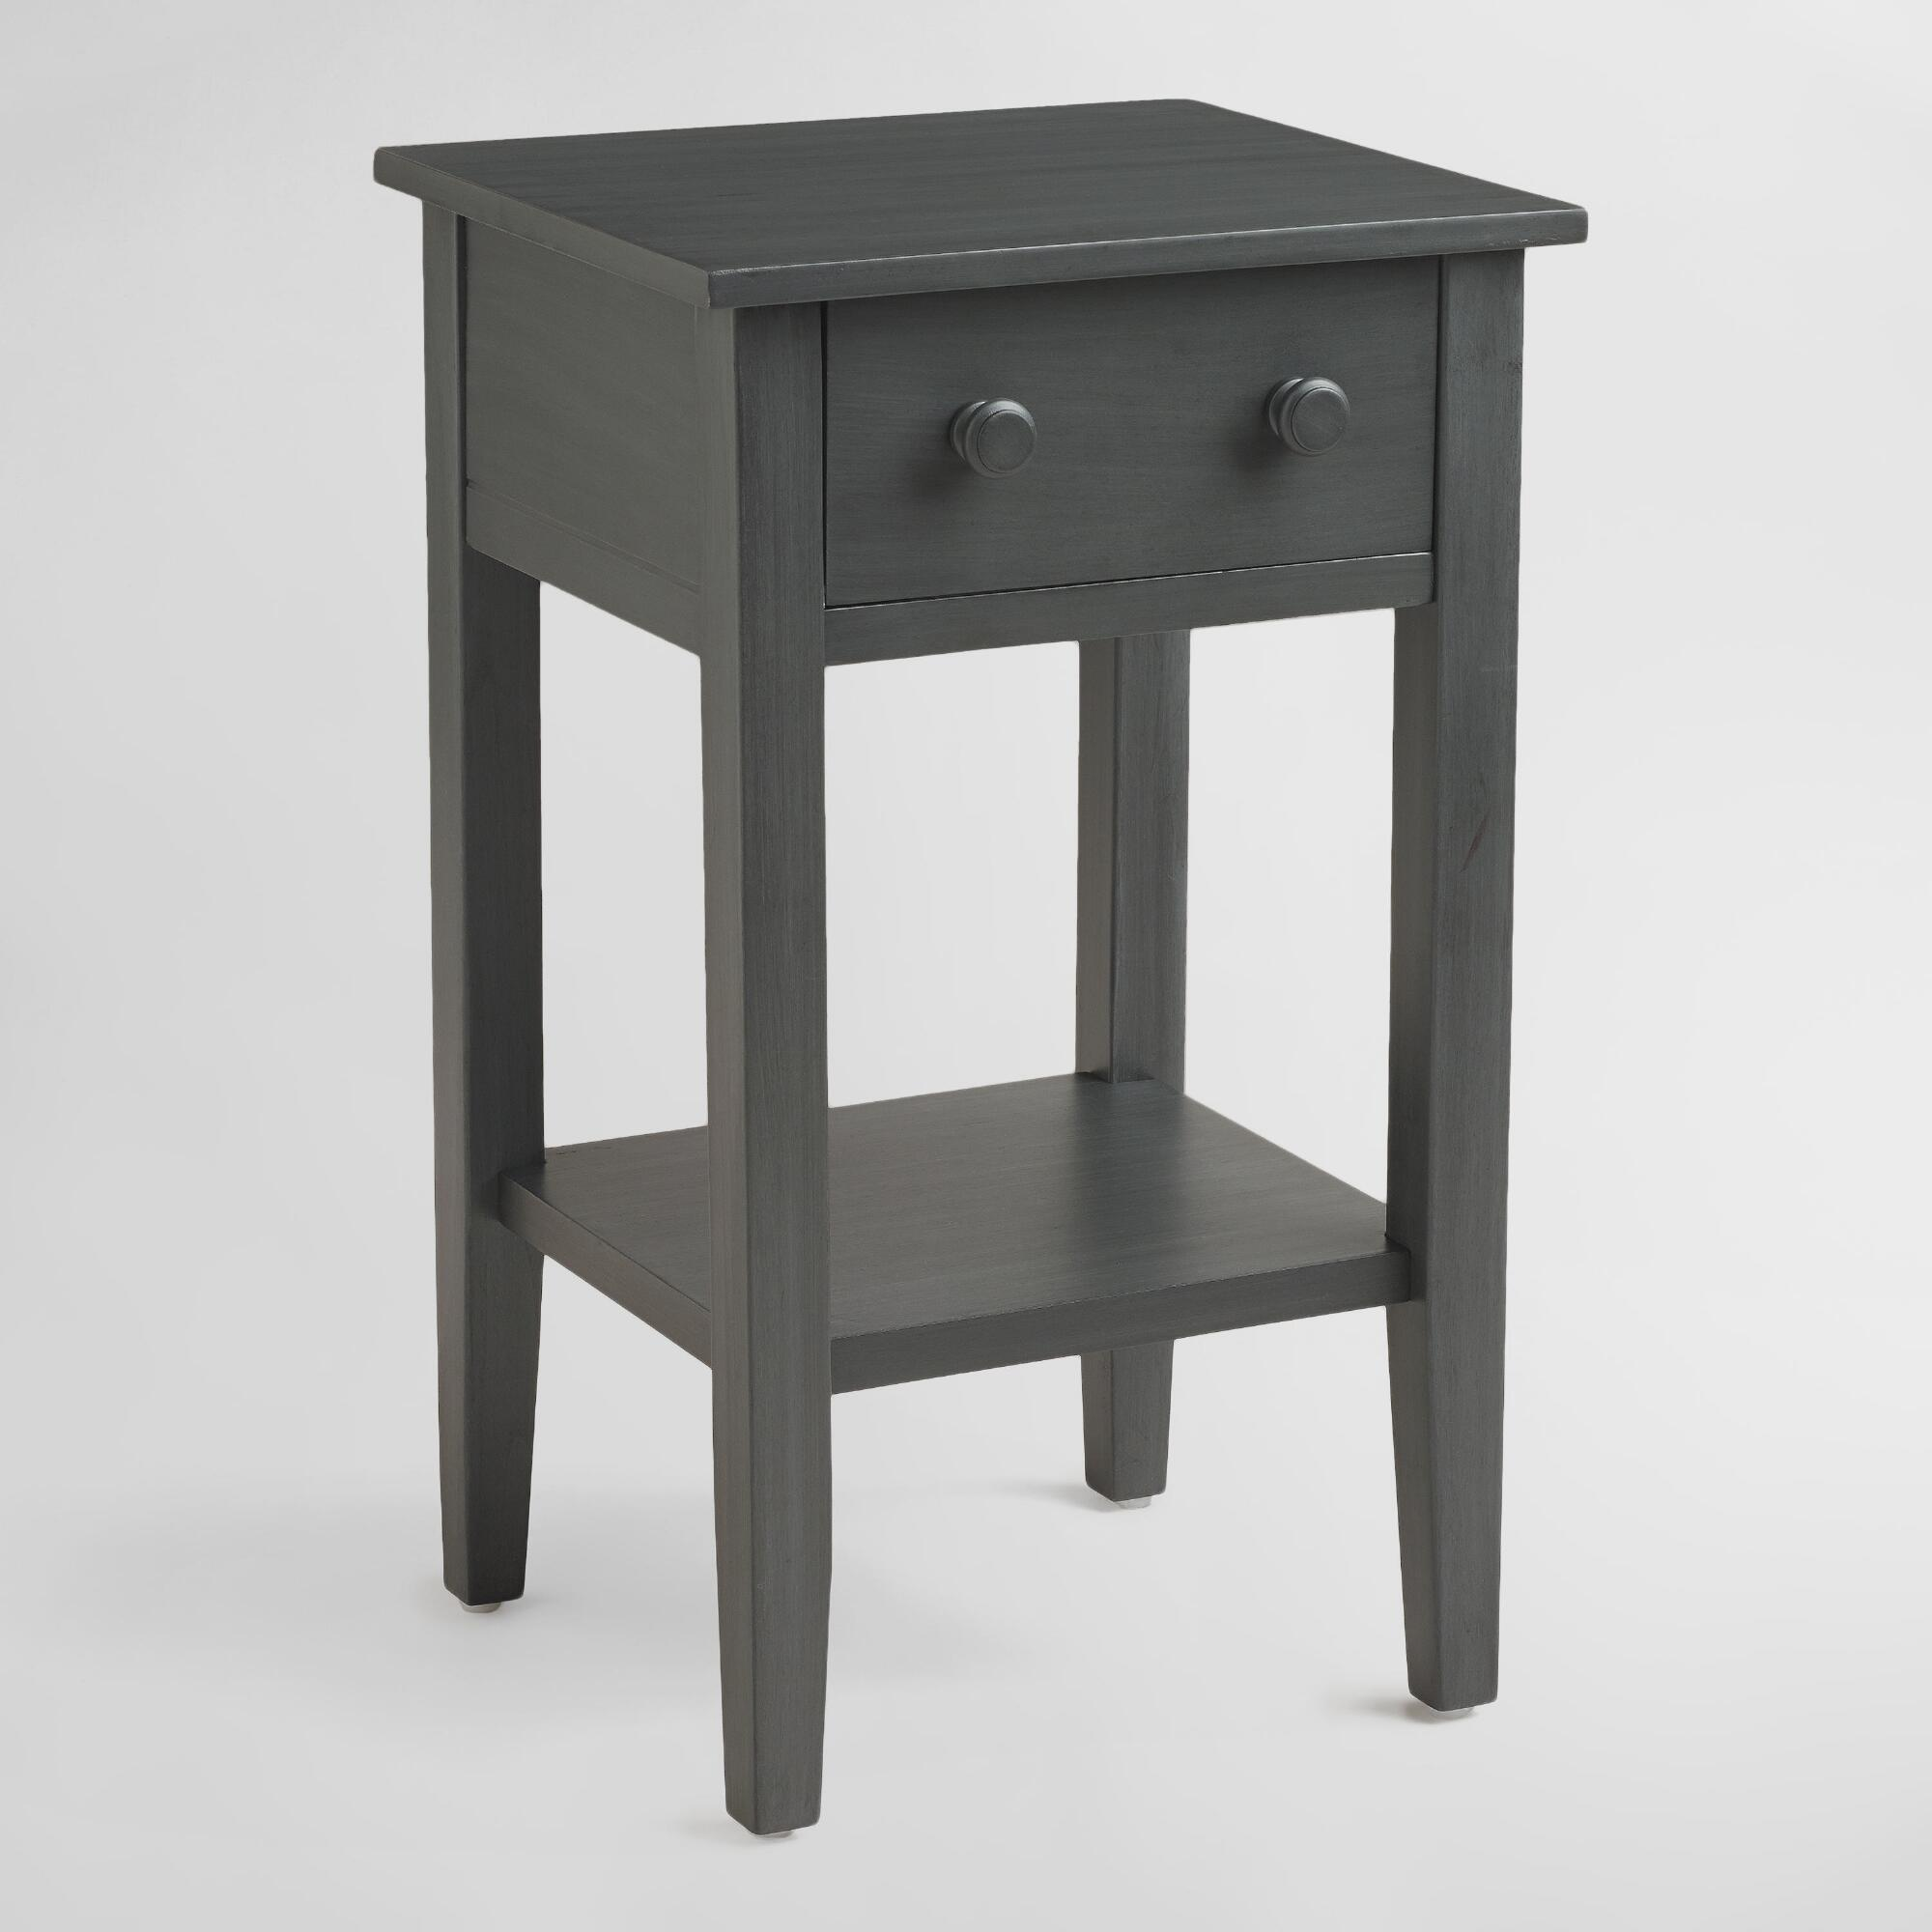 nightstands bedside tables vanity sets world market iipsrv fcgi threshold mirrored accent table with drawer tobacco blue sara nightstand storage boxes leather top granite coffee